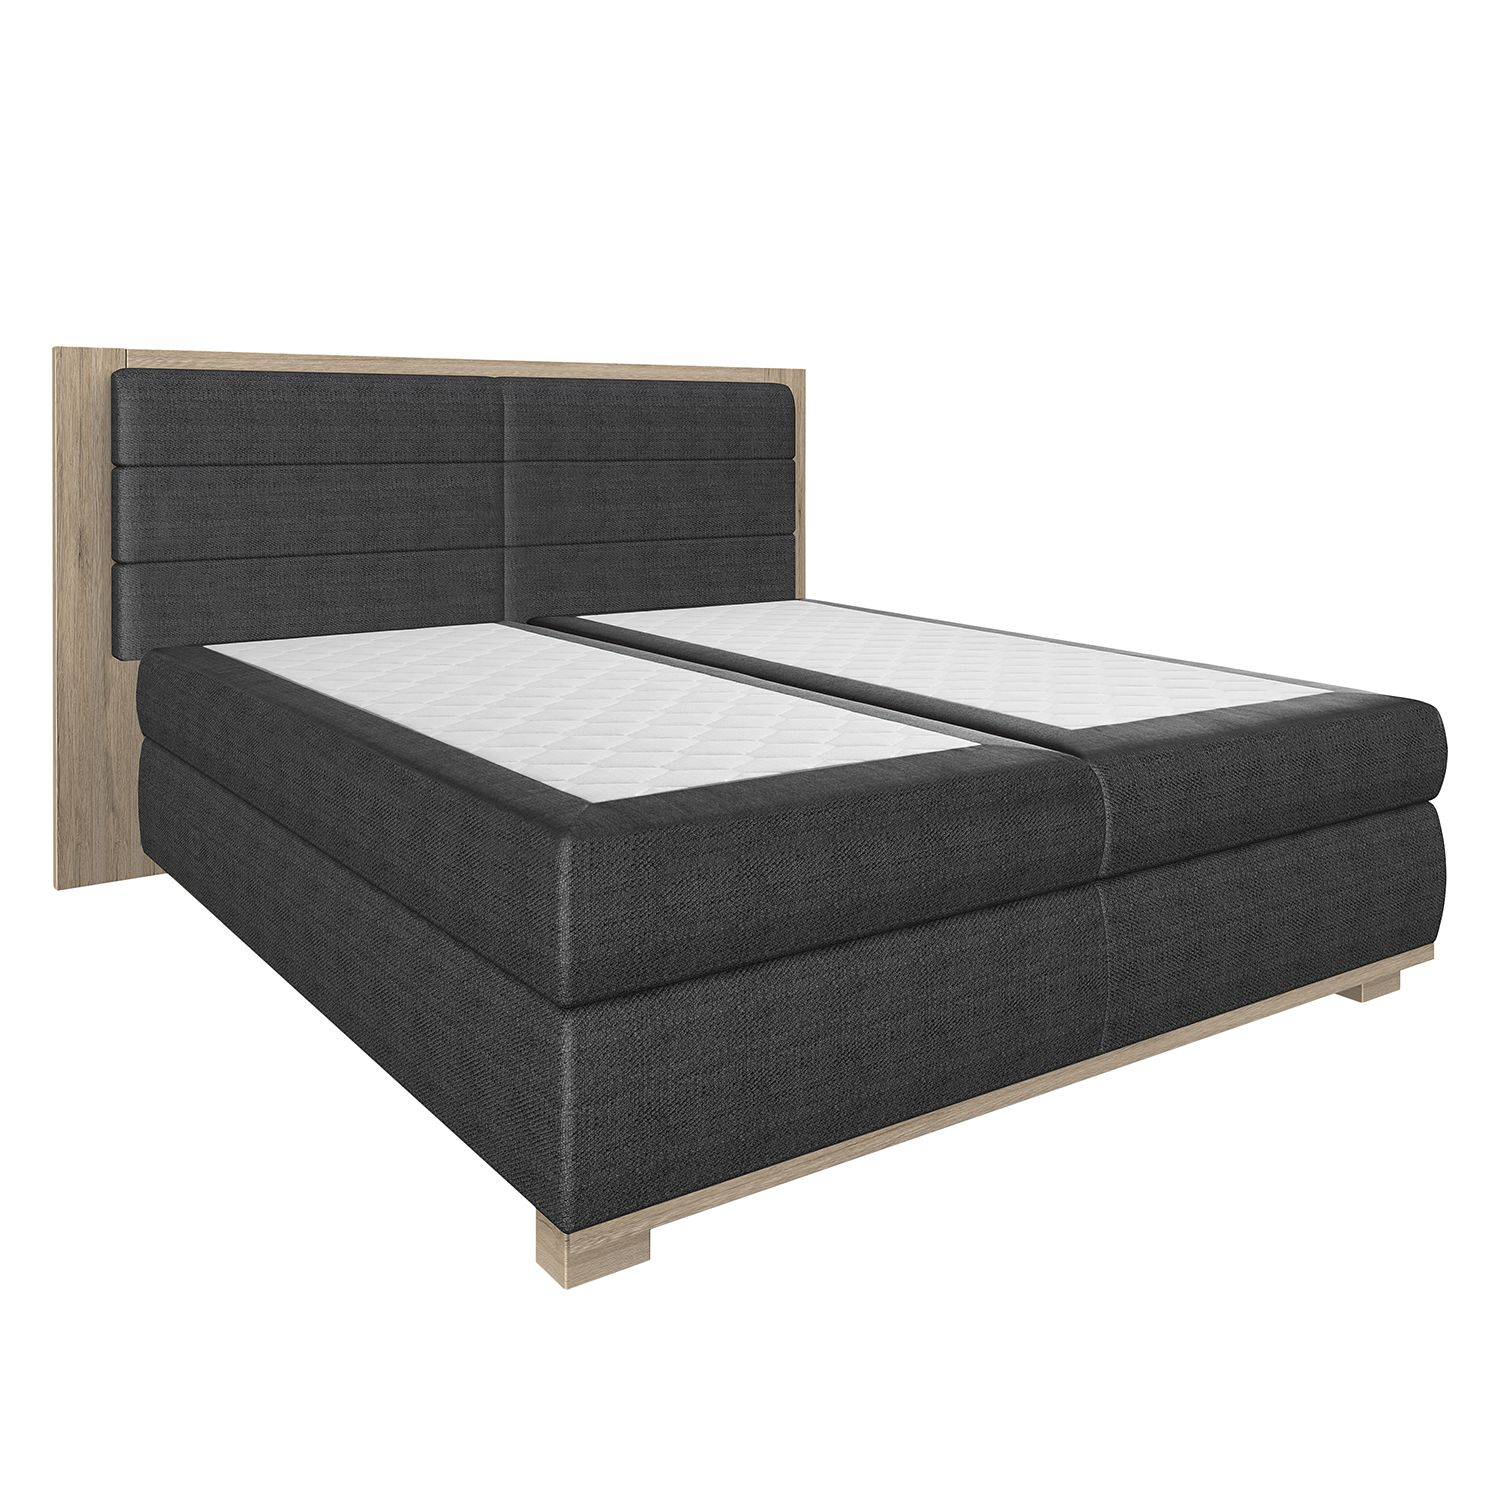 boxspringbett ohio ohne topper anthrazit. Black Bedroom Furniture Sets. Home Design Ideas